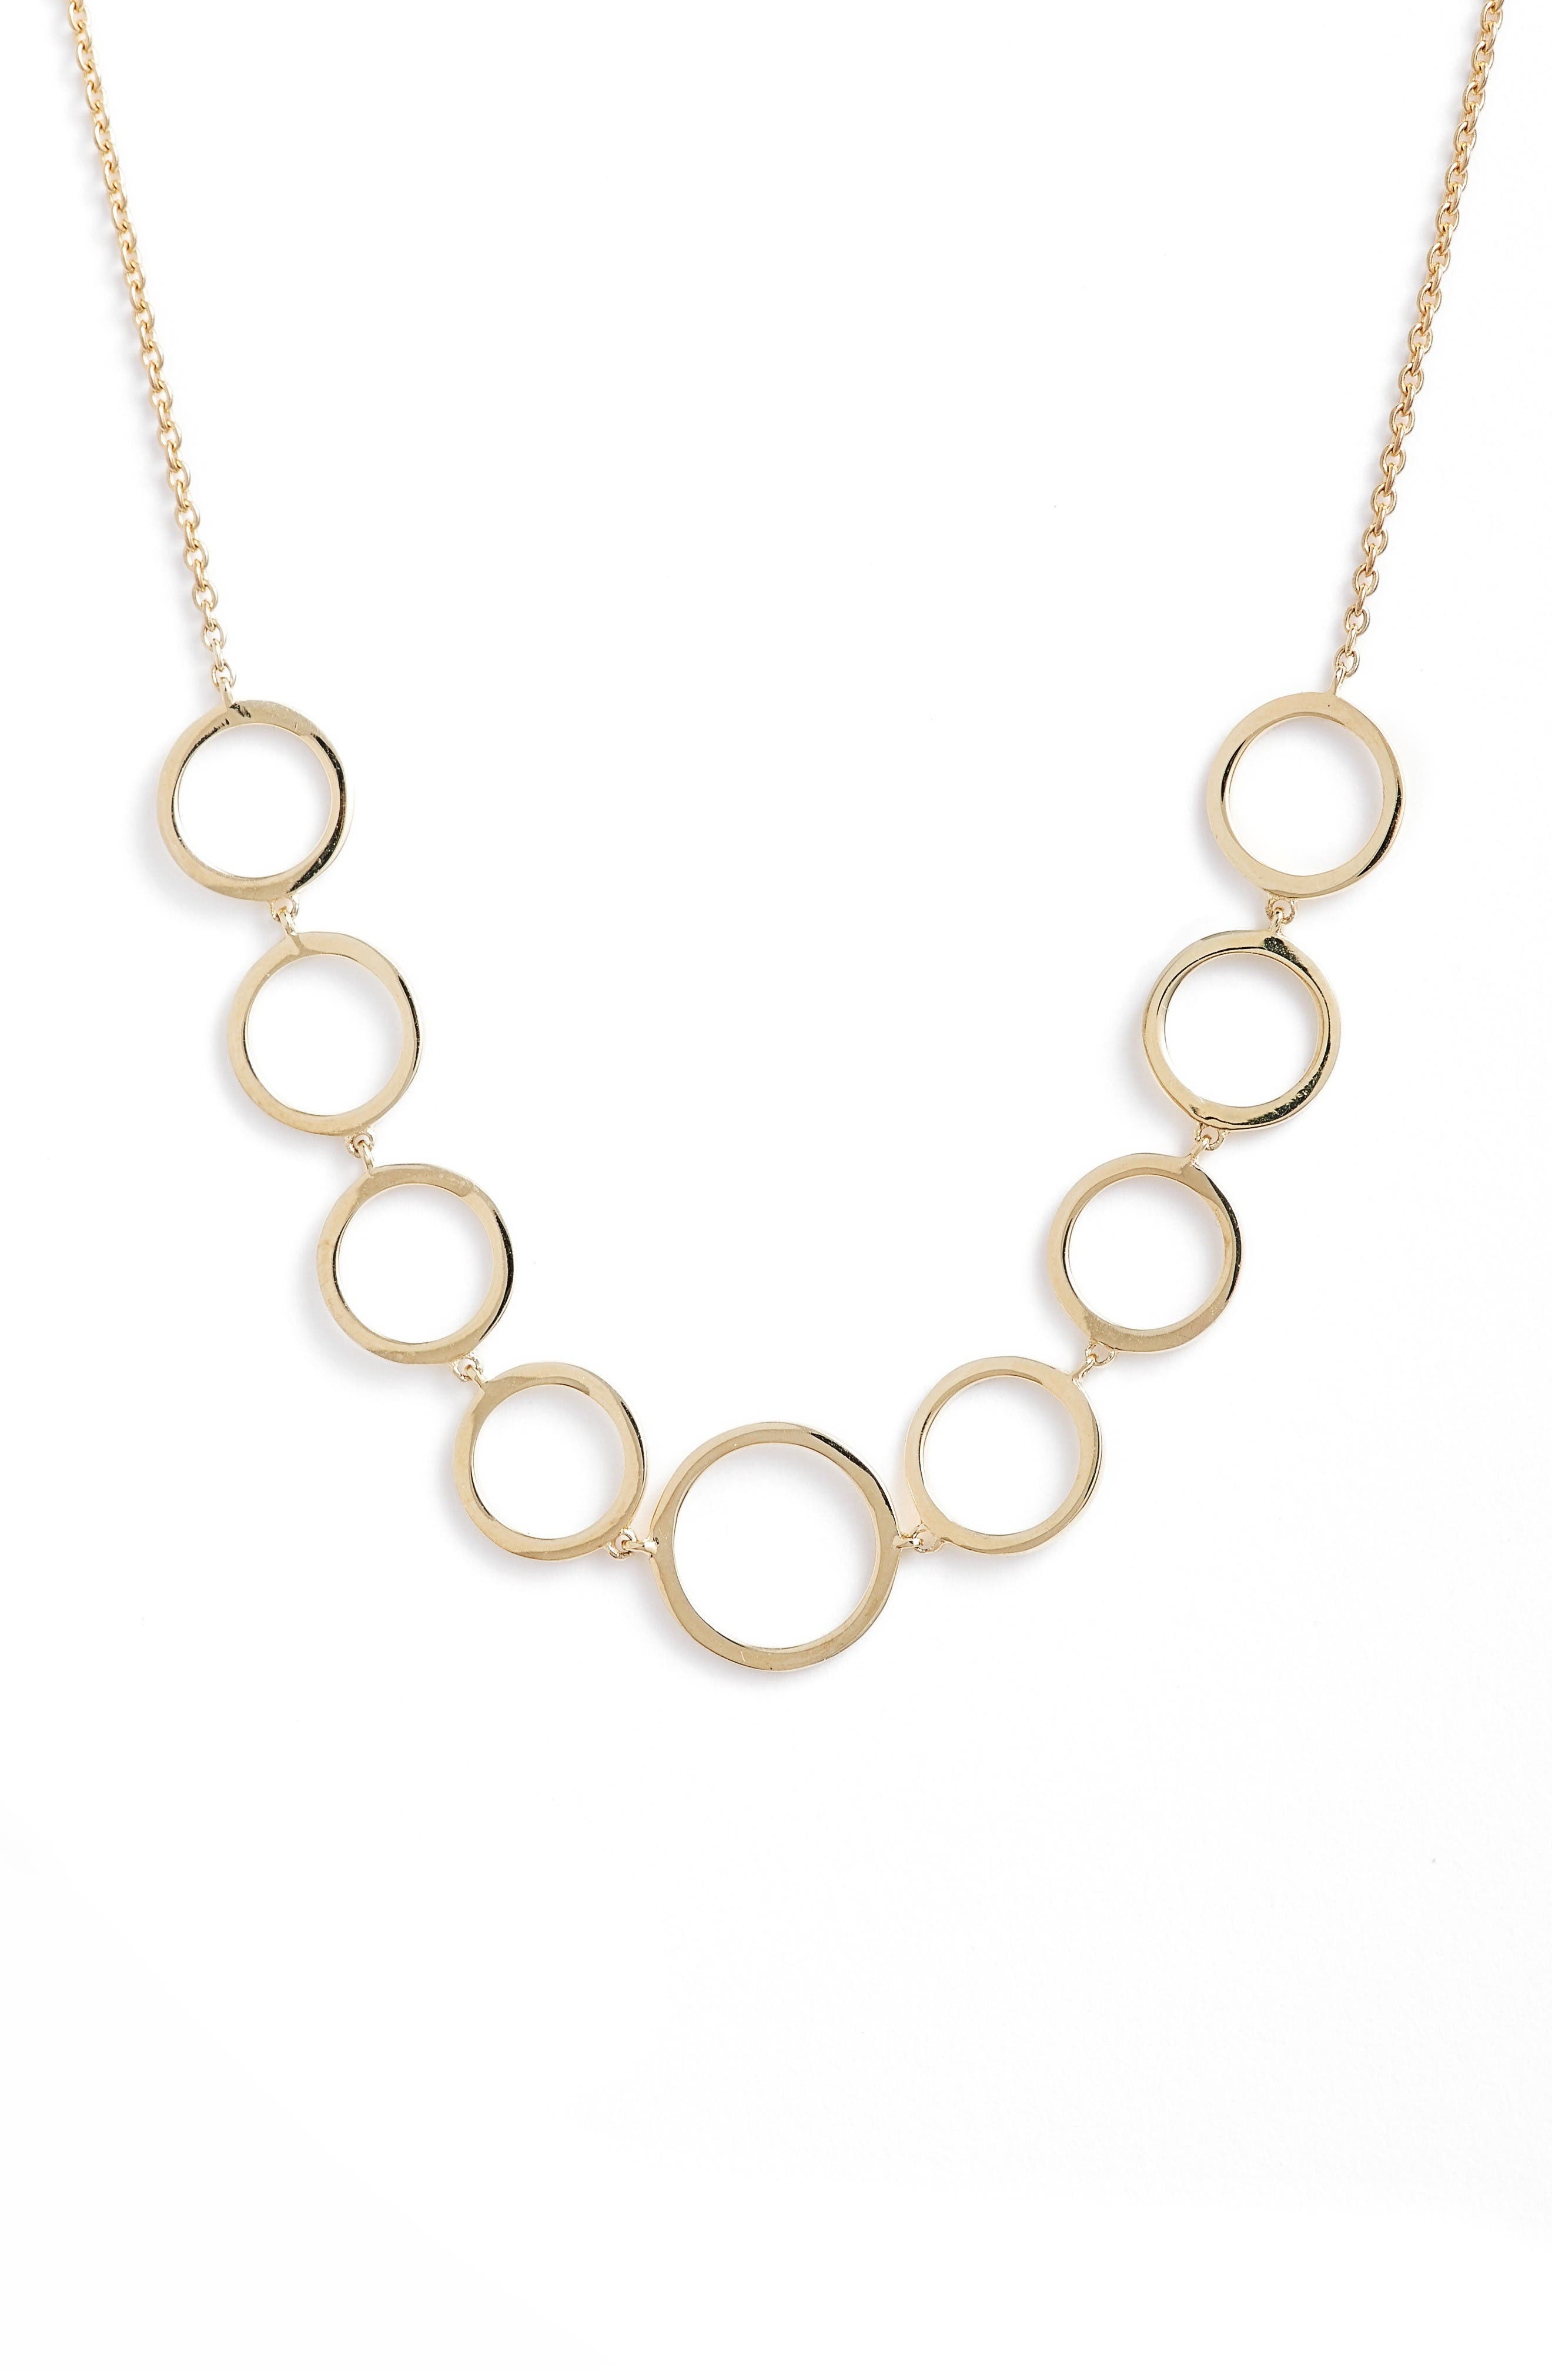 Main Image - Bony Levy Geo Circle Necklace (Nordstrom Exclusive)